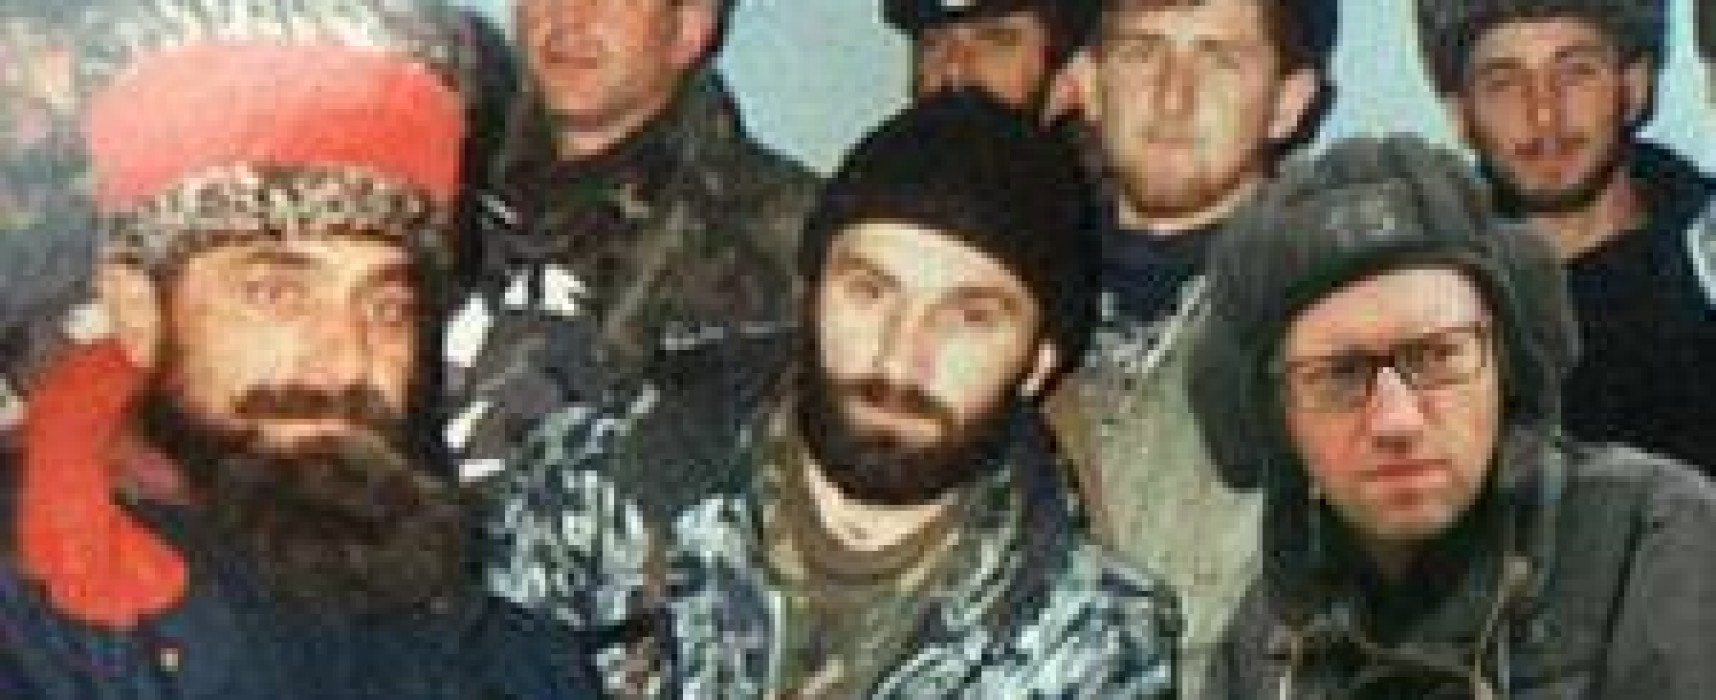 The Chilling side to Russia's claims about Yatsenyuk as Chechnya fighter